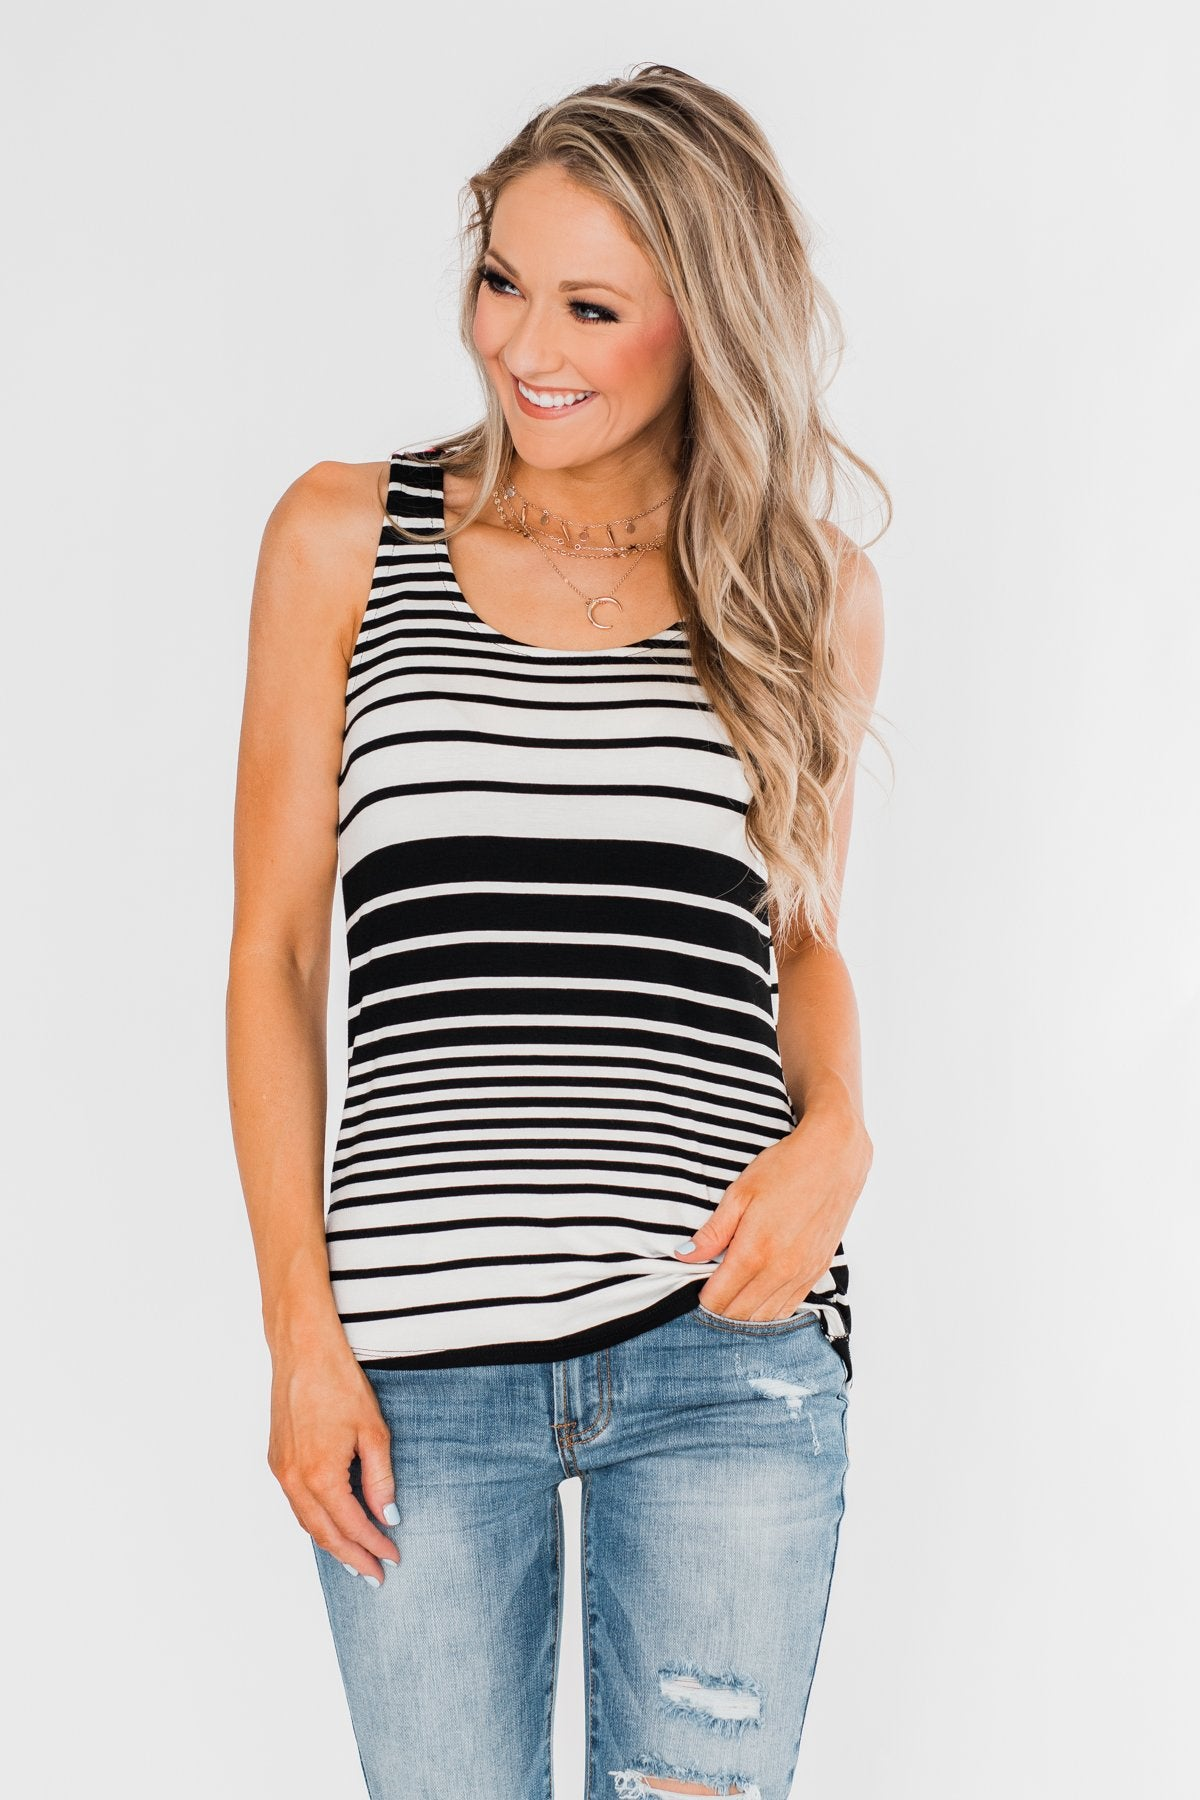 Falling For You Striped Bow Tank Top- Black & Neon Pink